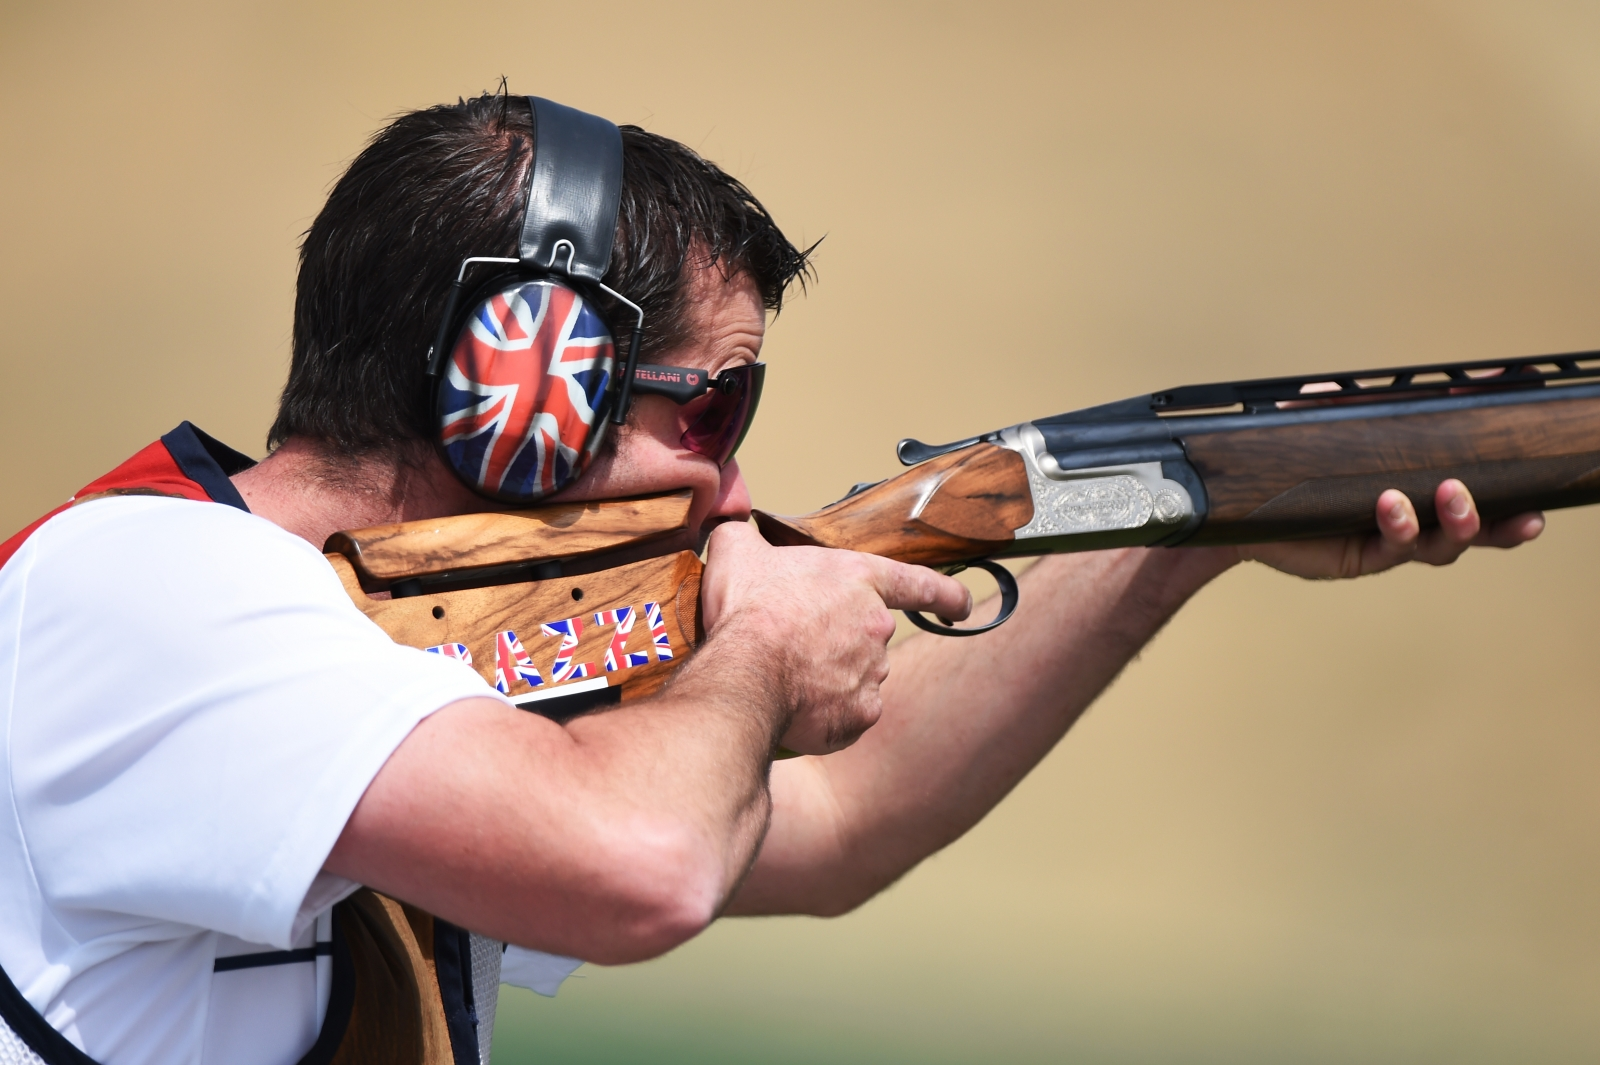 Somerset farmer shoots to victory winning medal at Rio Olympics